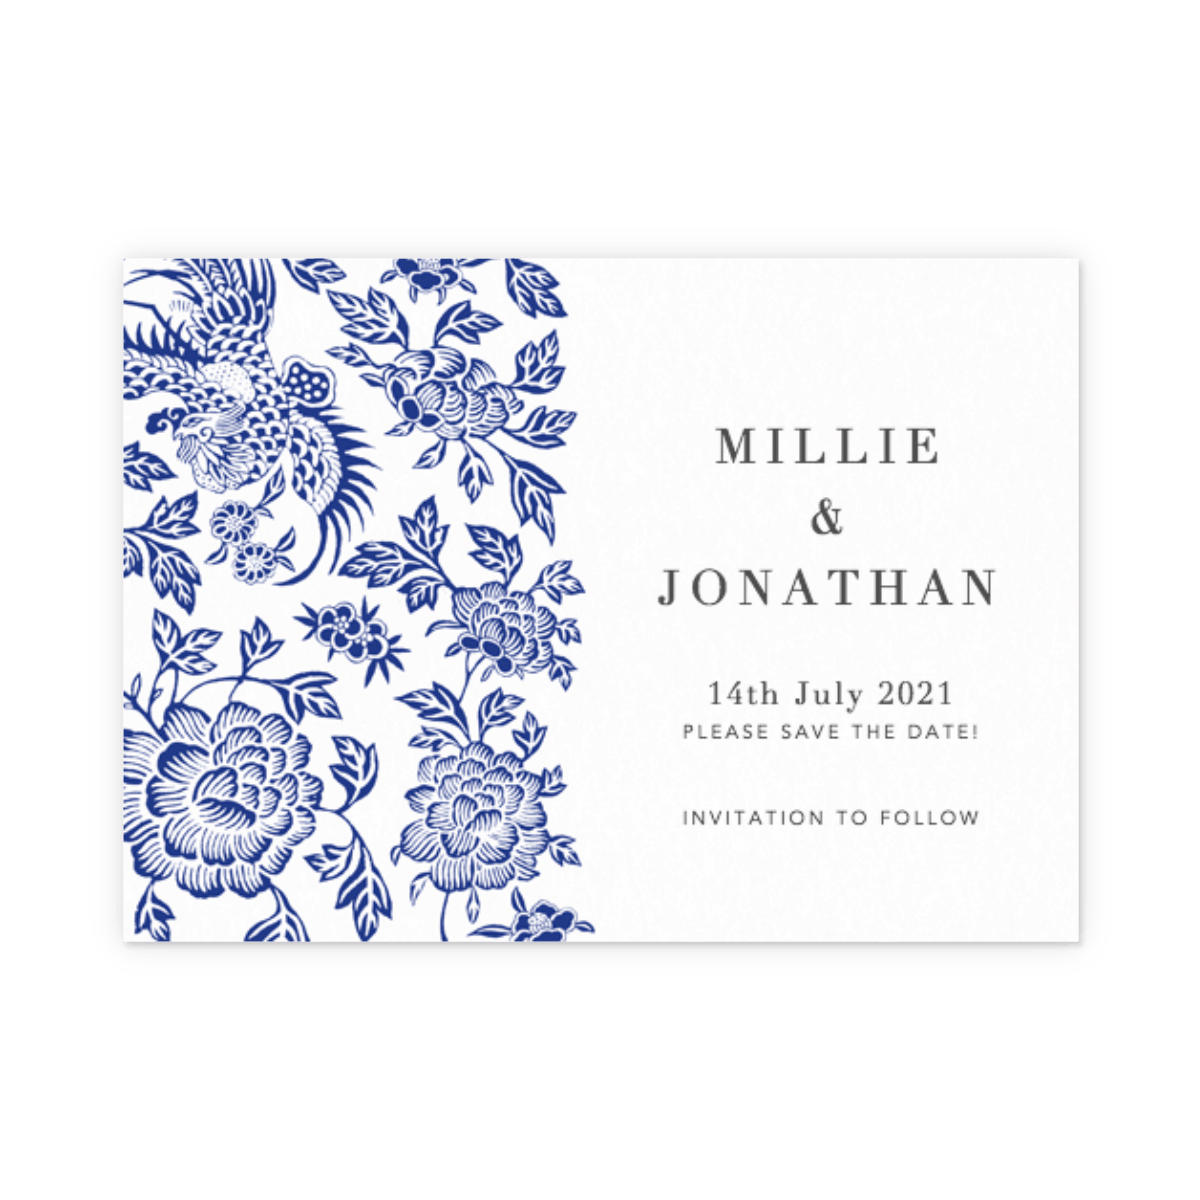 Https%3a%2f%2fwww.papier.com%2fproduct image%2f34348%2f10%2fornate blue florals 8592 front 1519318252.png?ixlib=rb 1.1